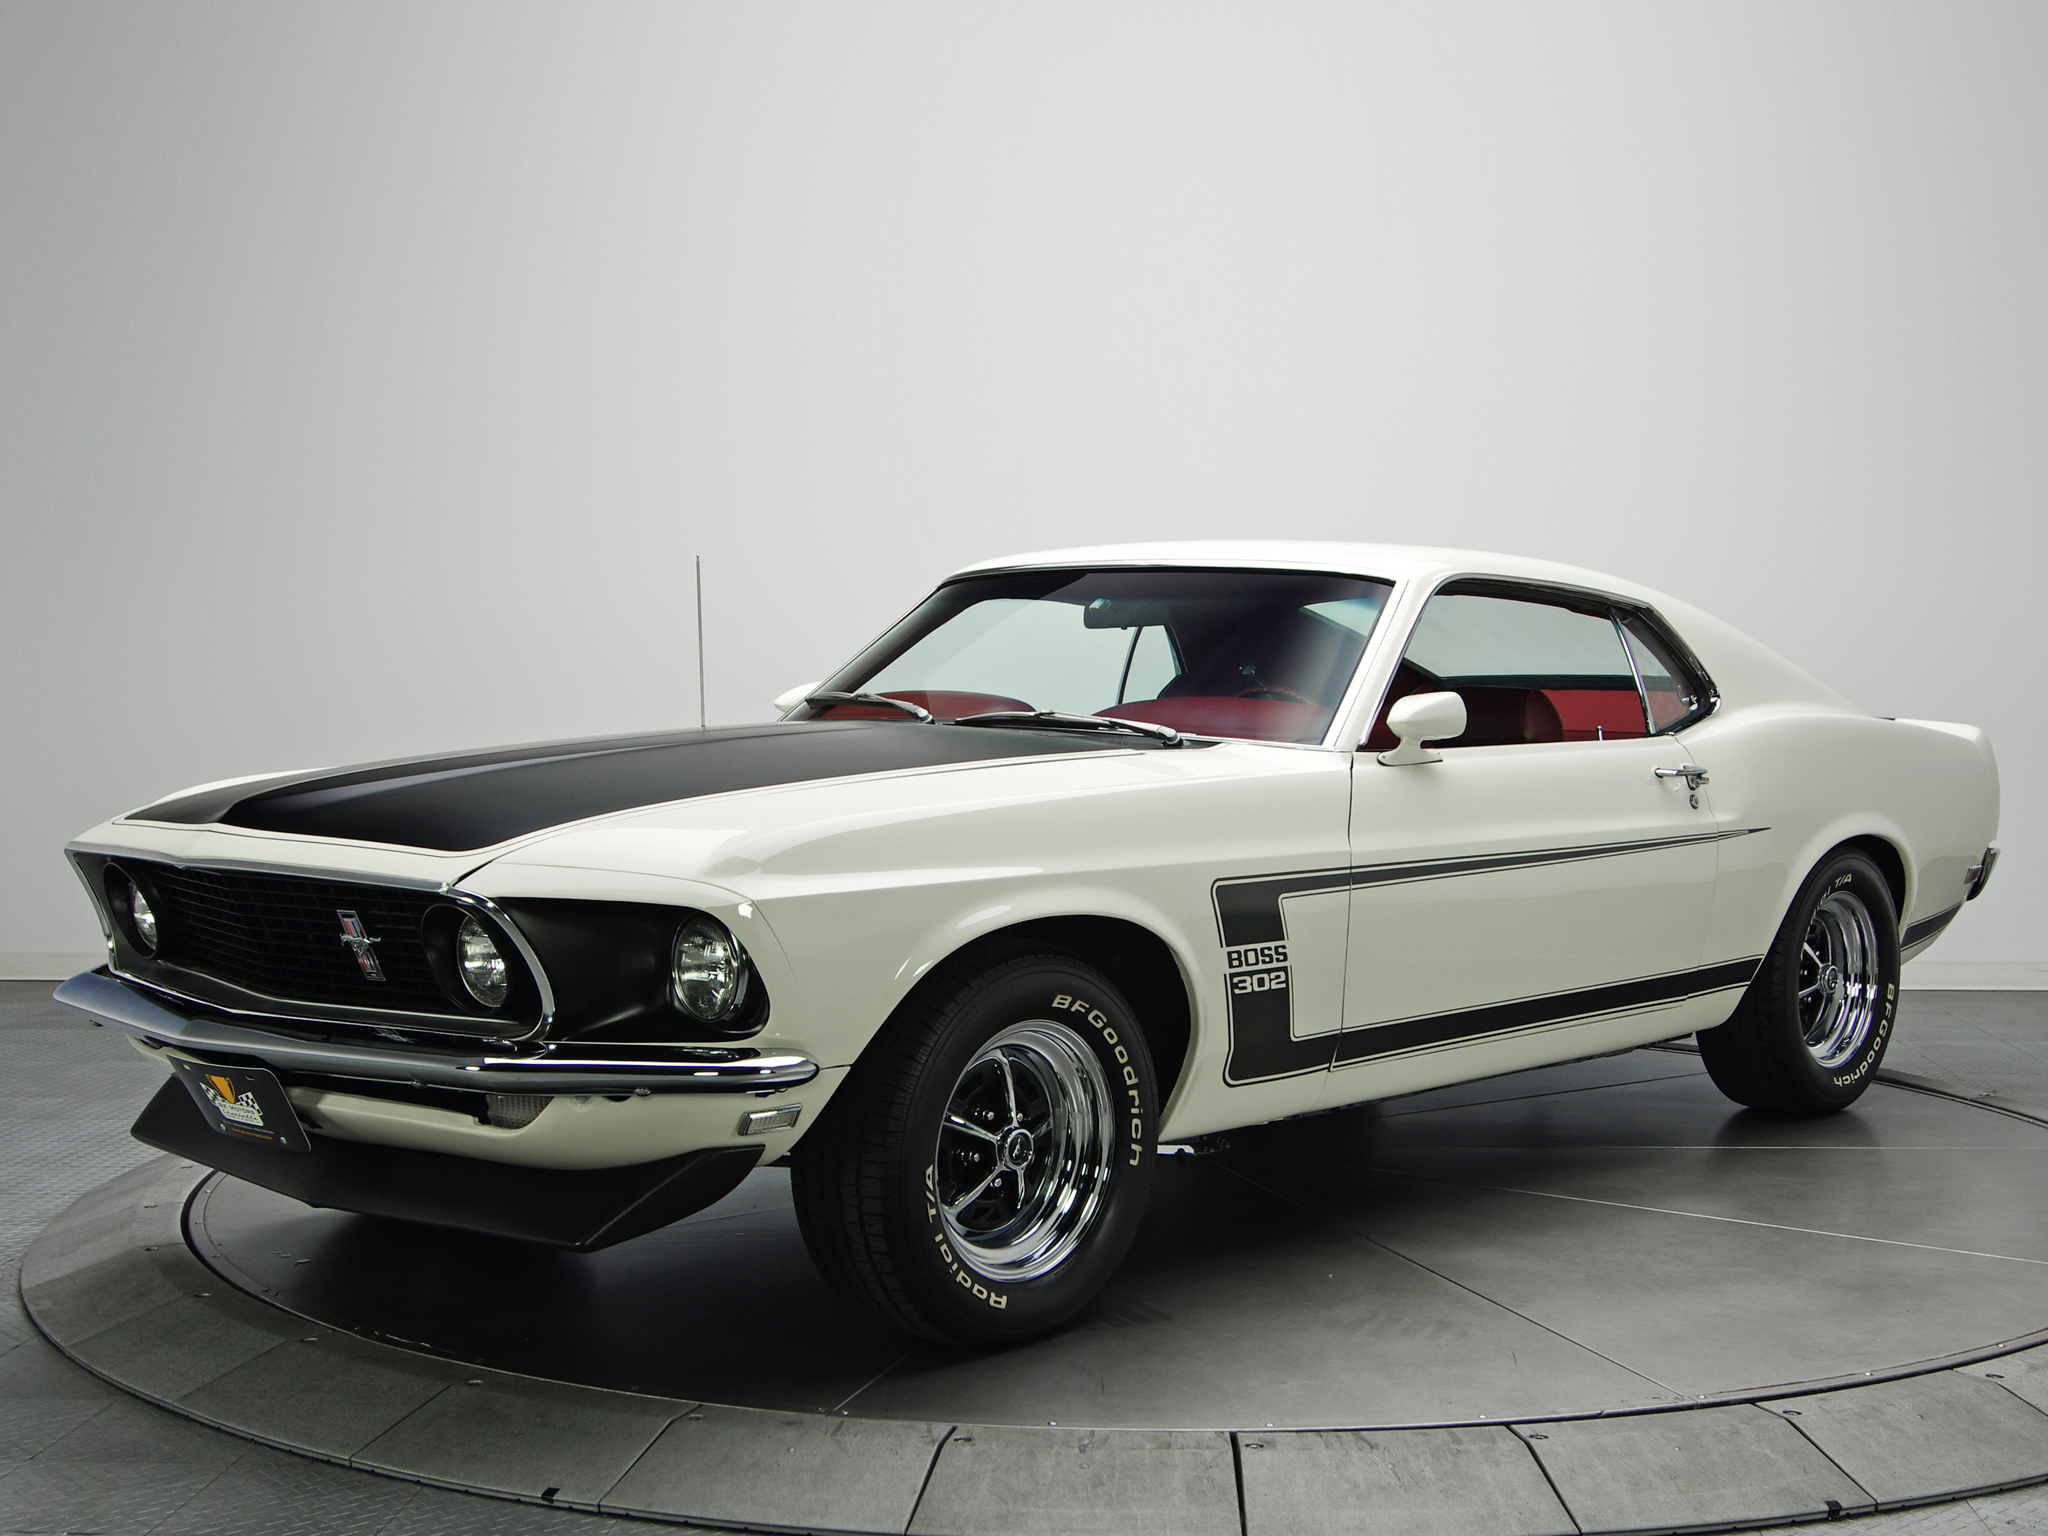 1969 ford mustang boss 302 muscle classic fg wallpaper. Black Bedroom Furniture Sets. Home Design Ideas